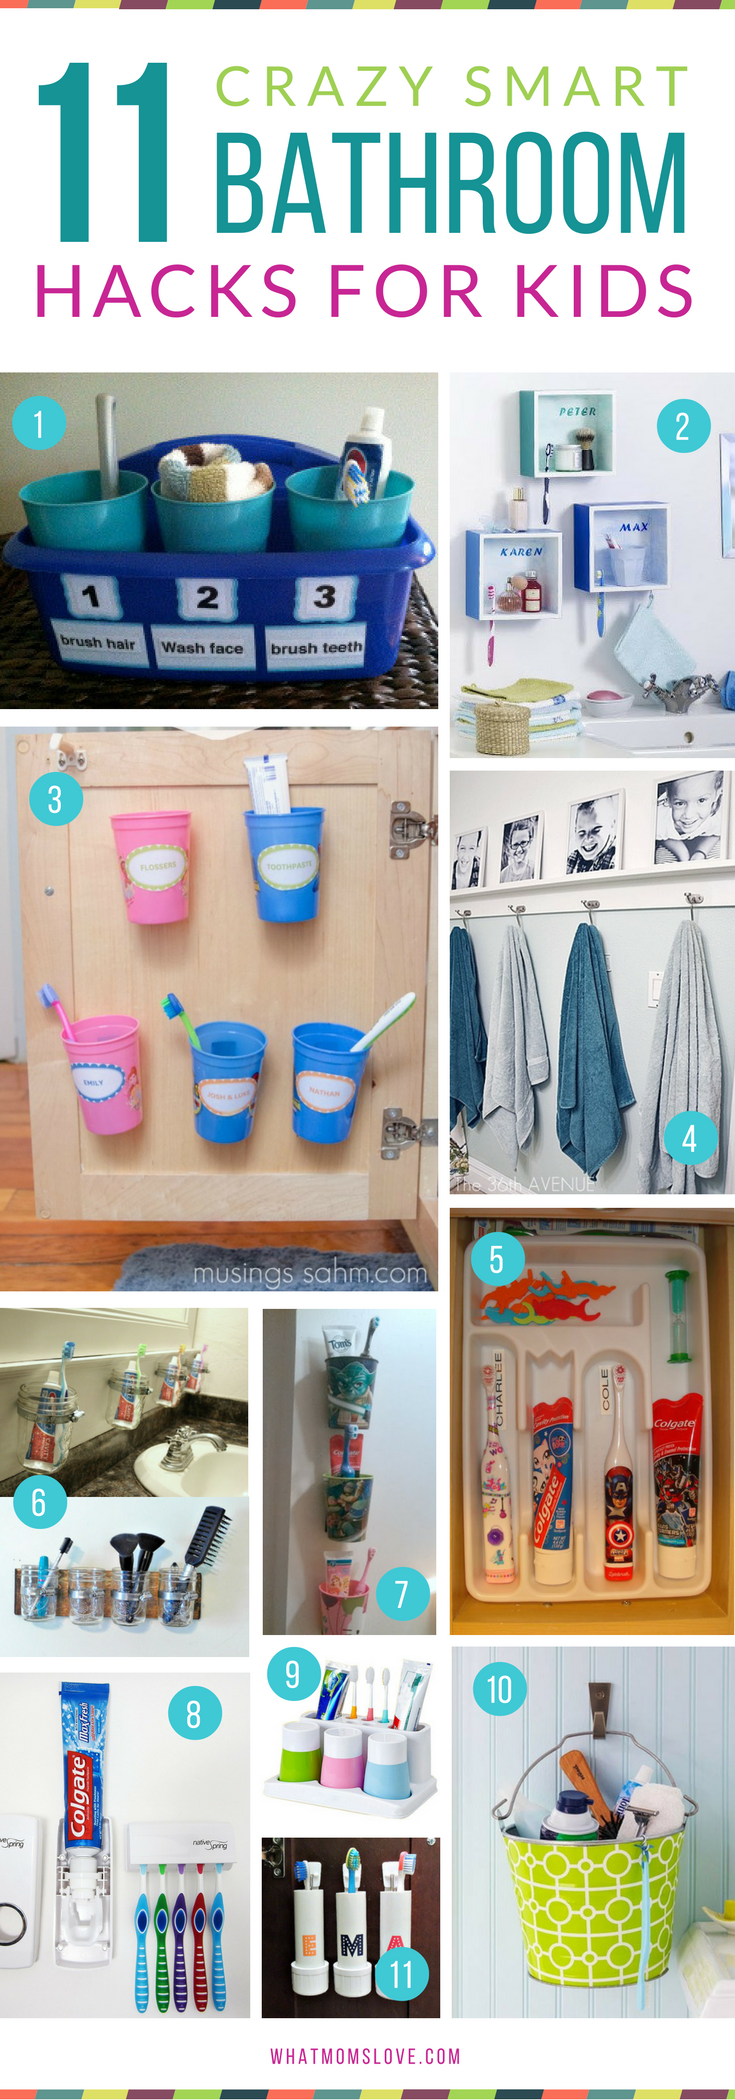 Genius Hacks For An Organized Bathroom Tips And Tricks Stress Free Mornings With Kids Perfect Getting Them Into A Back To School Routine